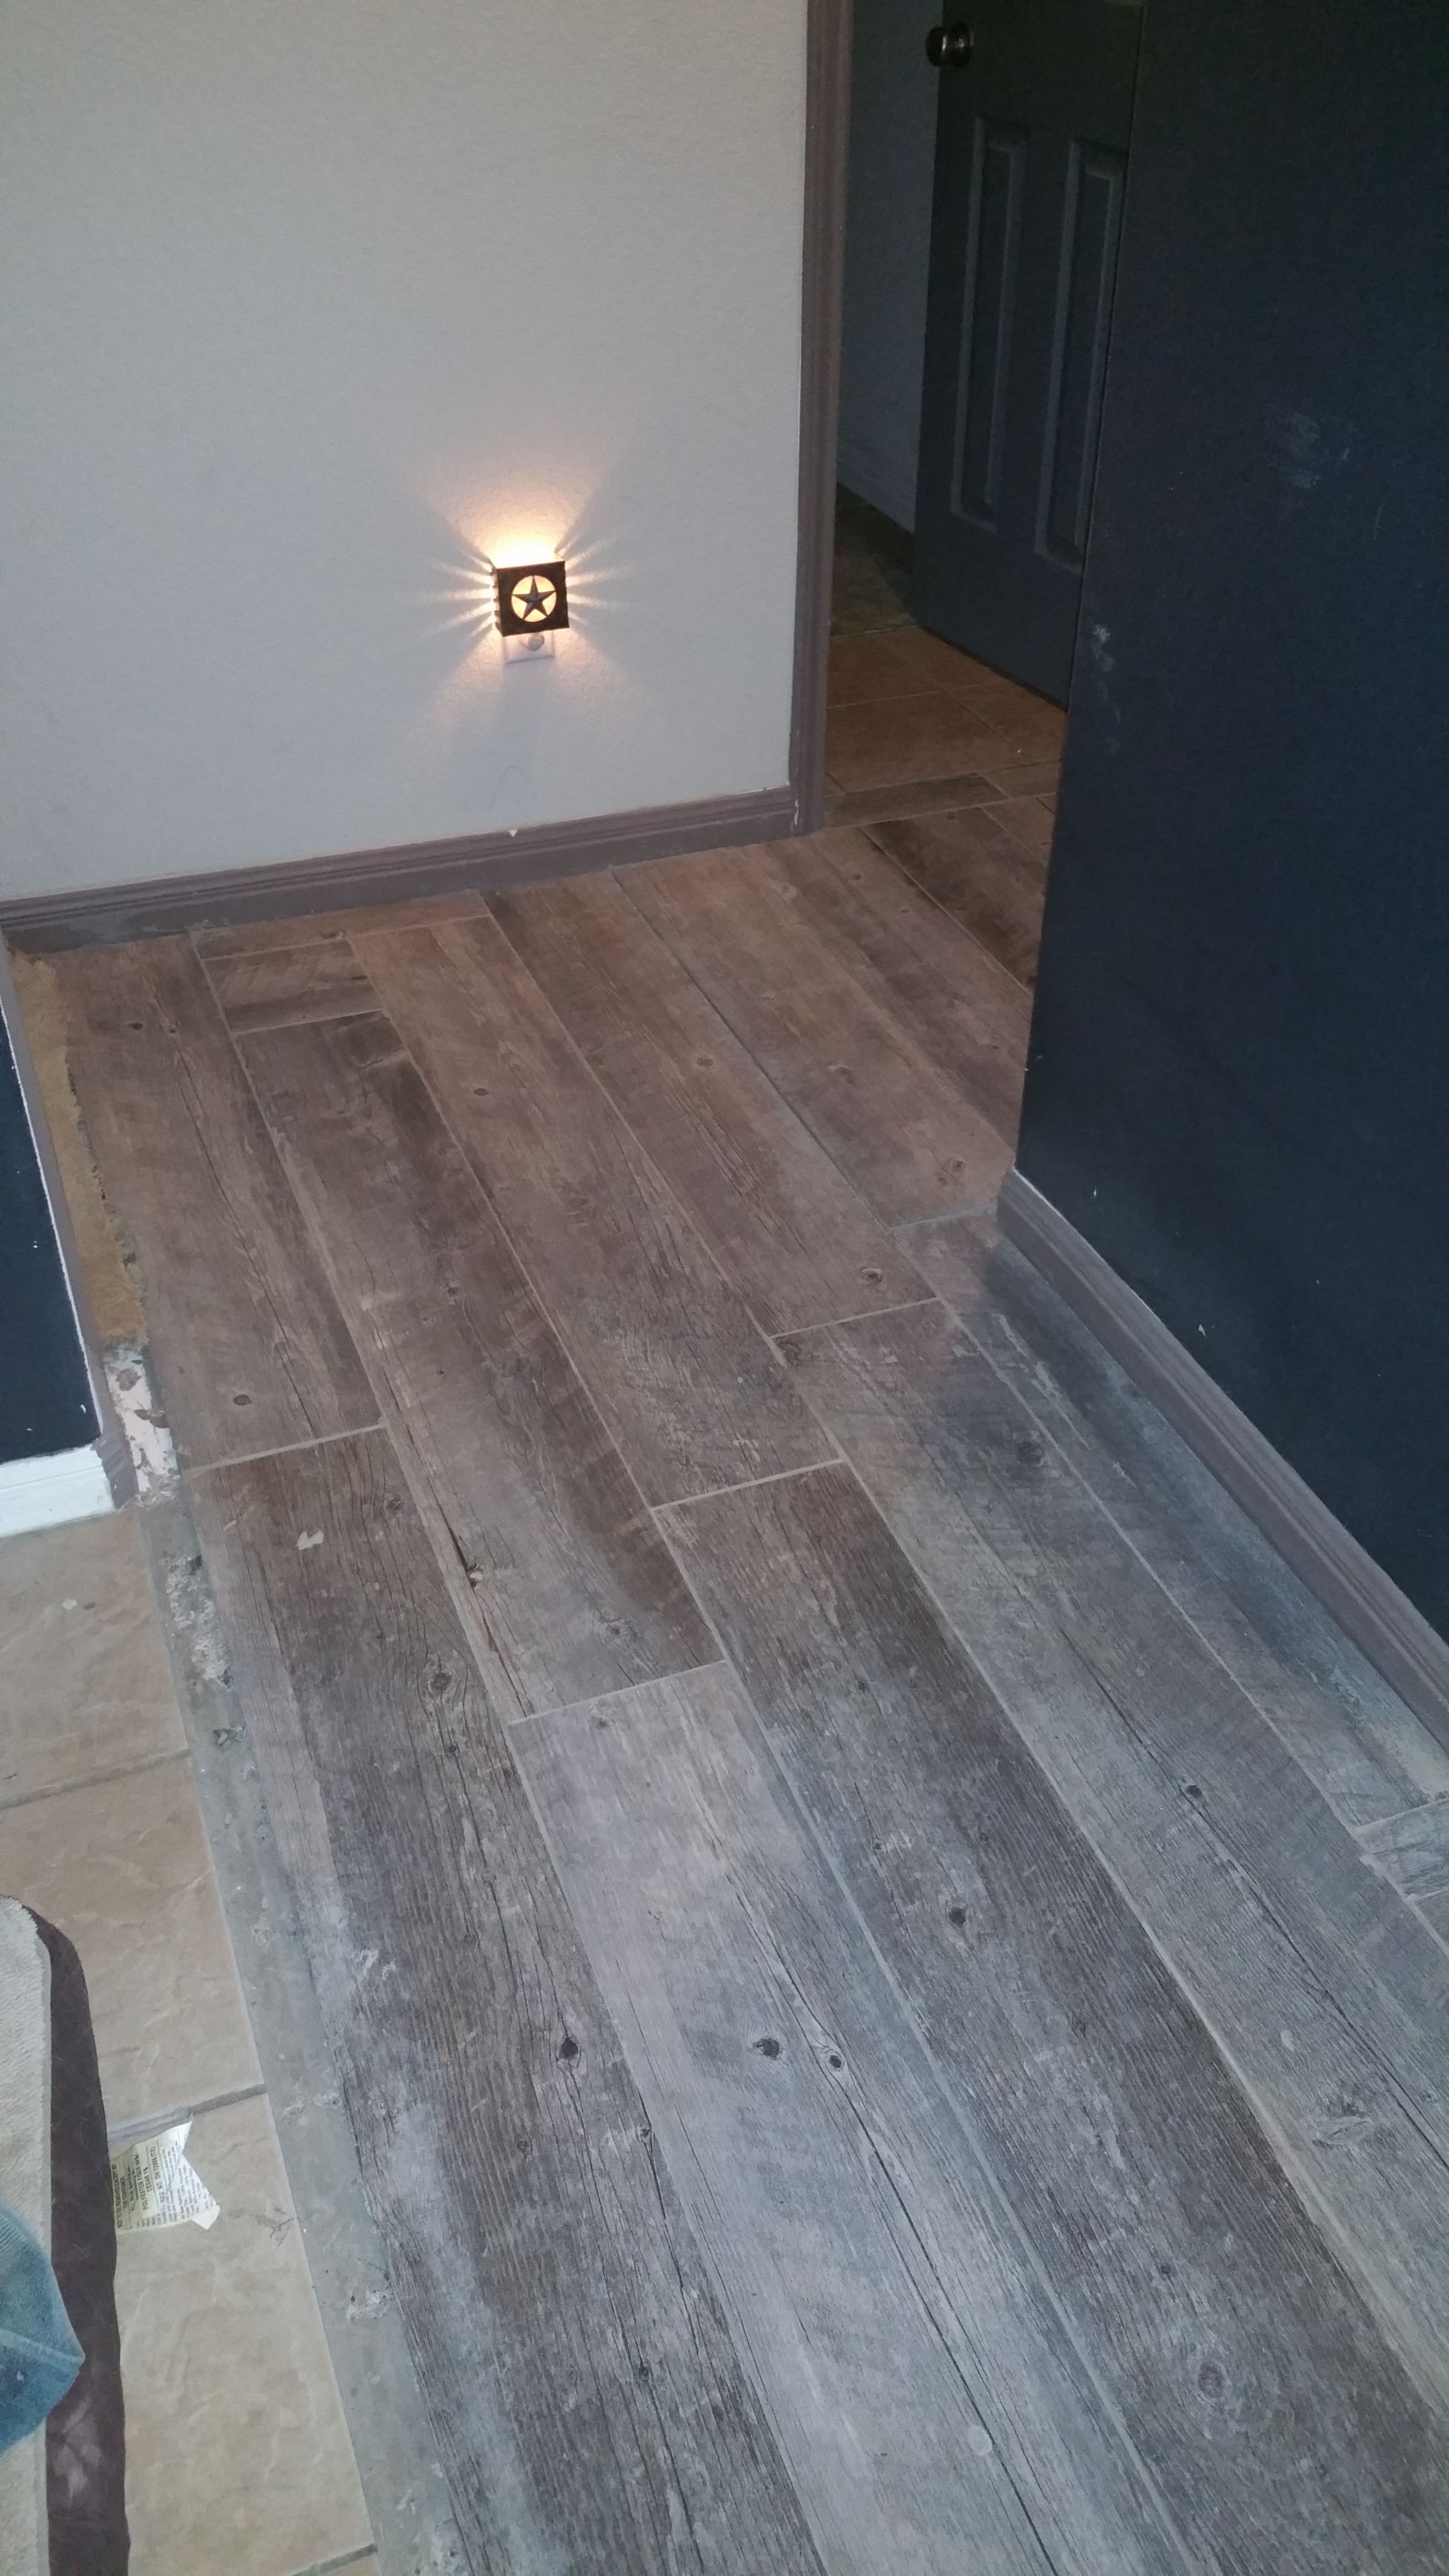 New Floors Made By Natural Timber Ash Purchased From LOWEs Home - Lowes special order flooring